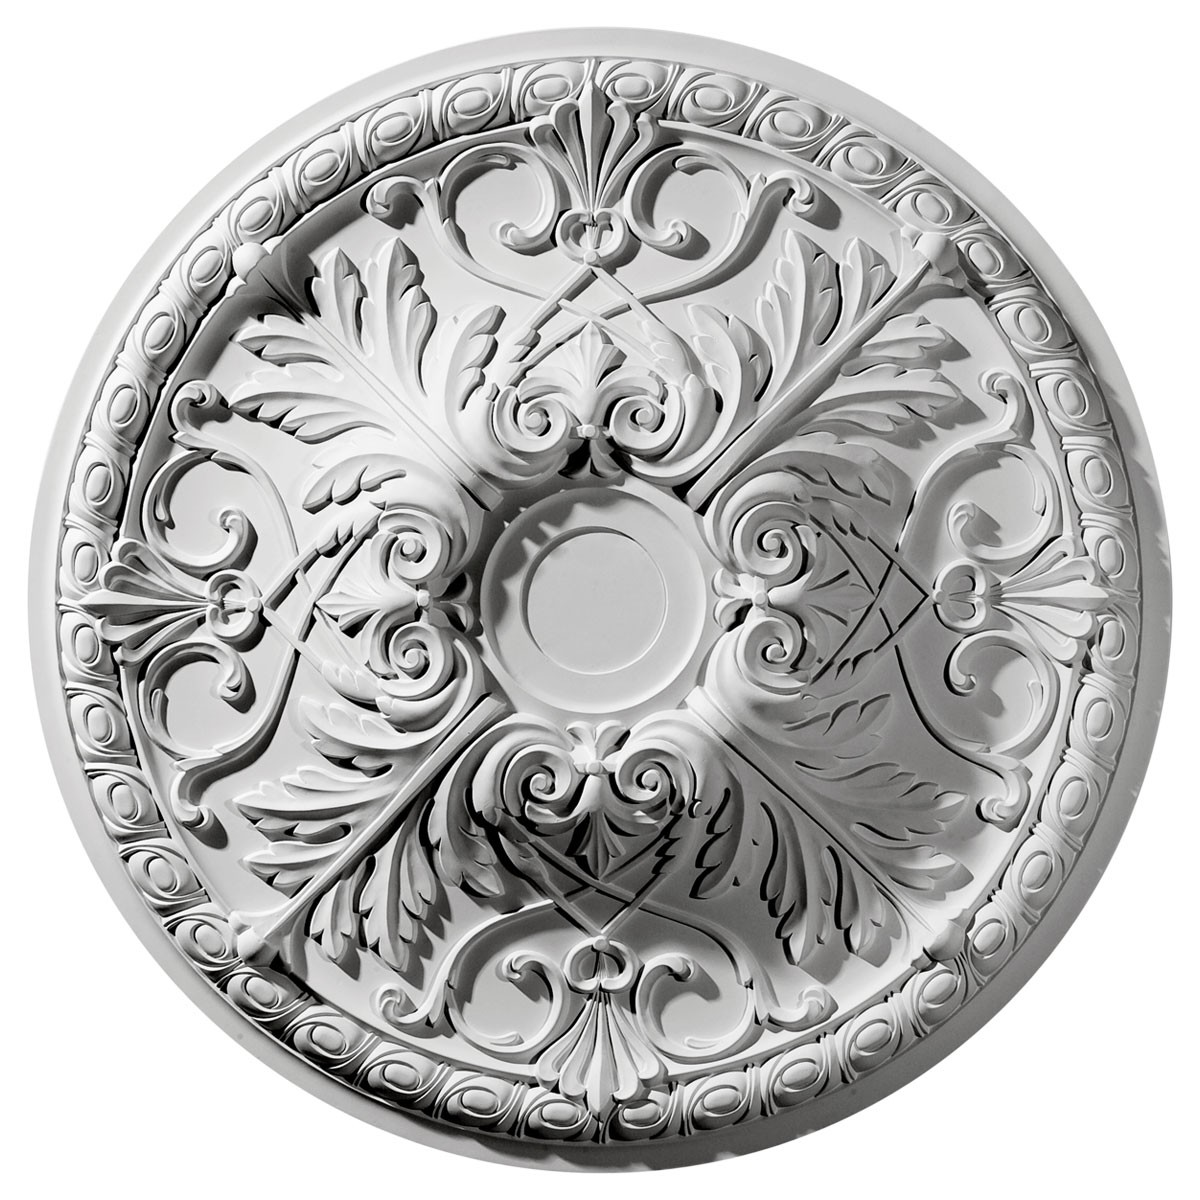 """EM-CM32TN - 32 3/8""""OD x 3 1/2""""P Tristan Ceiling Medallion (Fits Canopies up to 6 1/4"""")"""